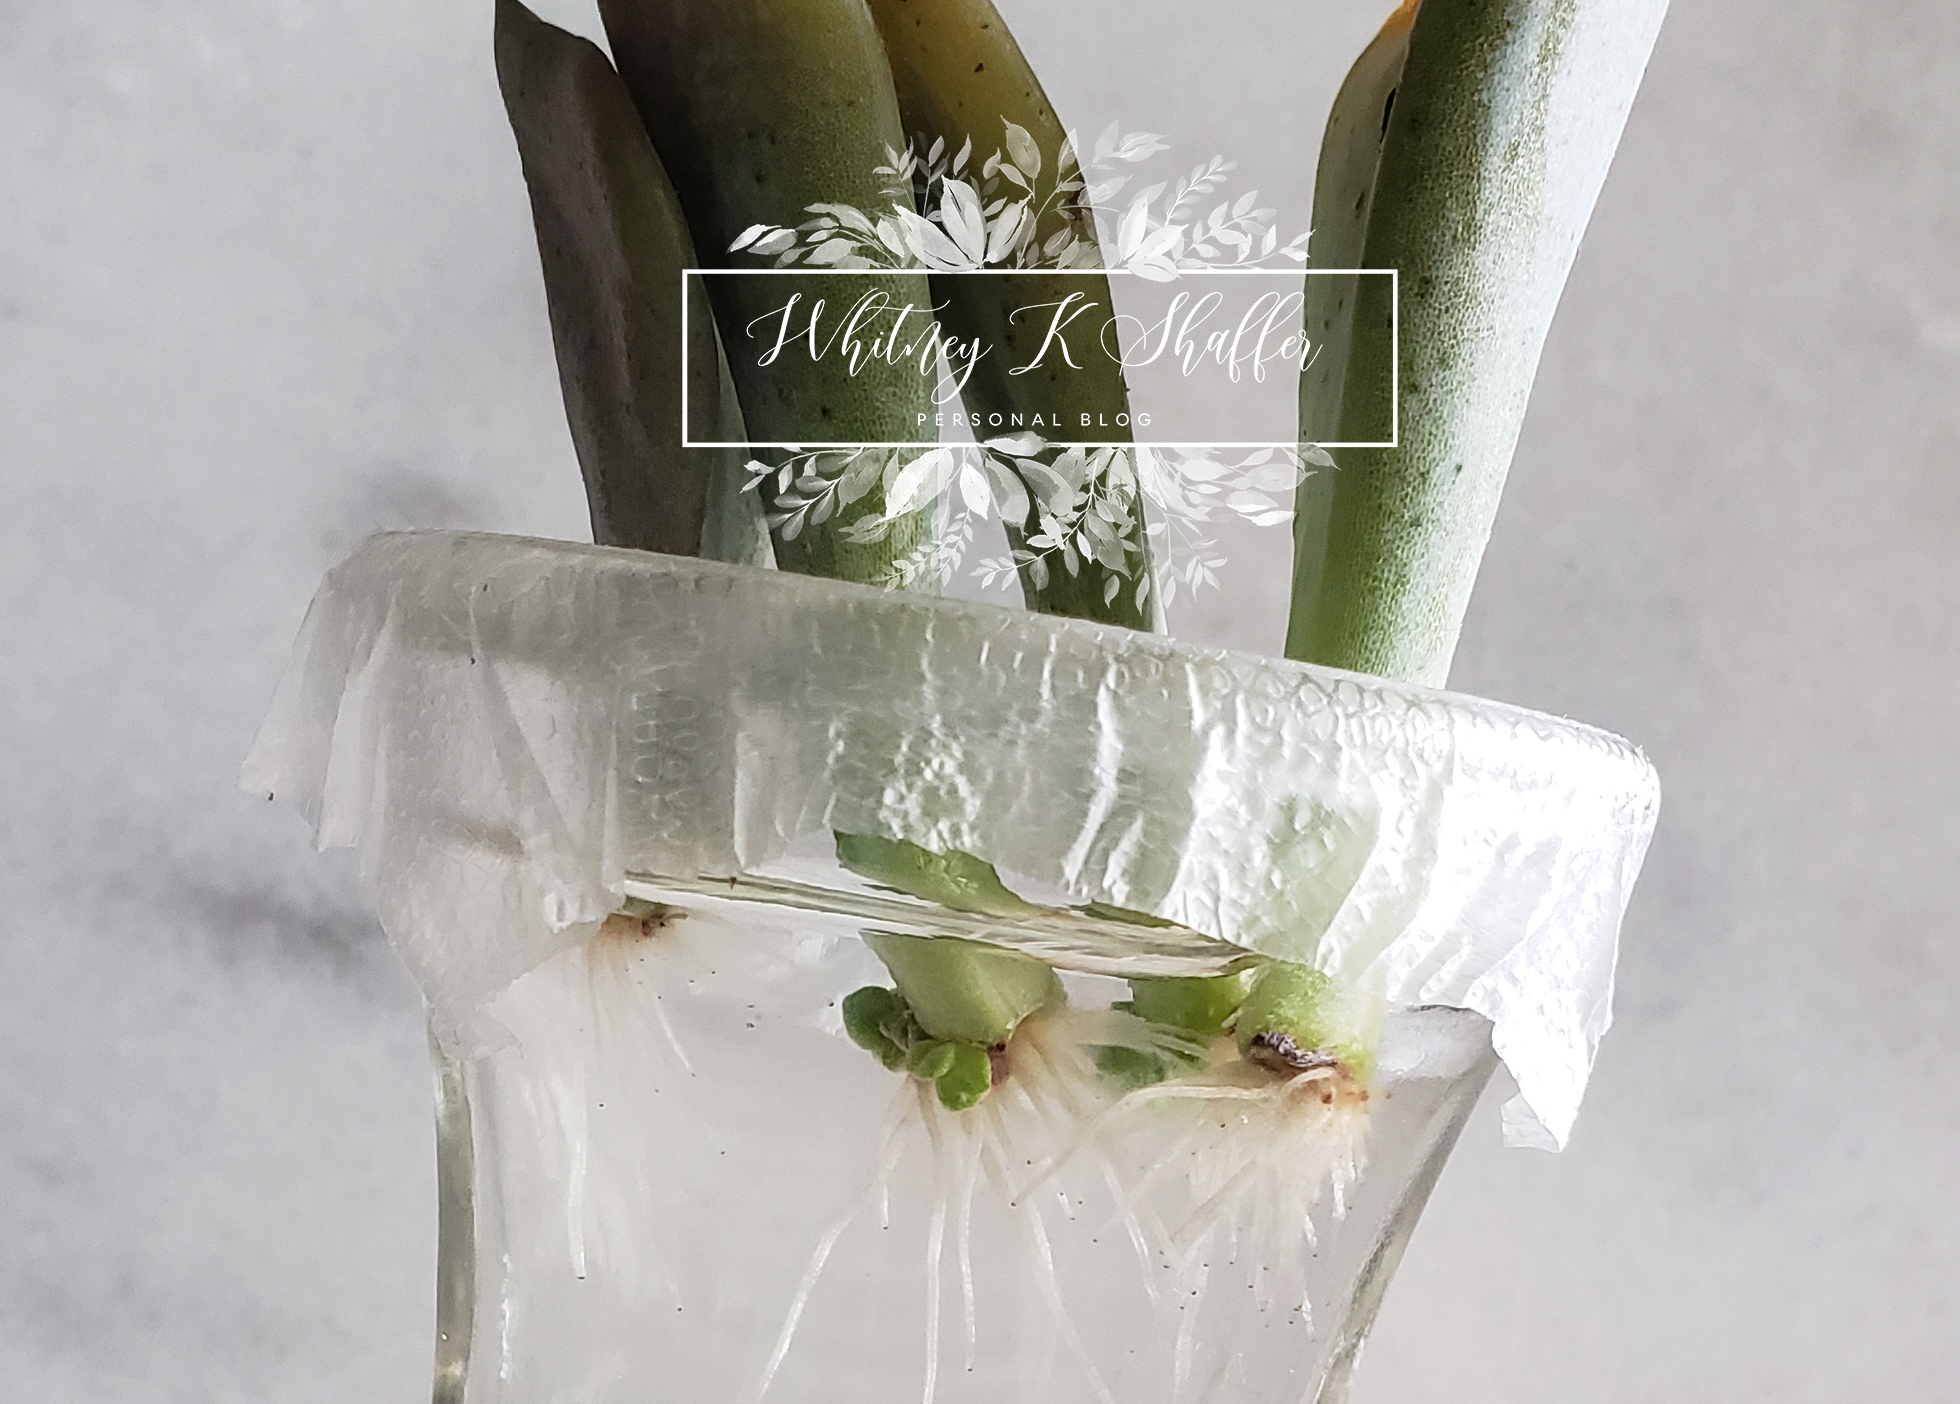 How To Succulent Propagation Water Method Whitneykshaffer Com